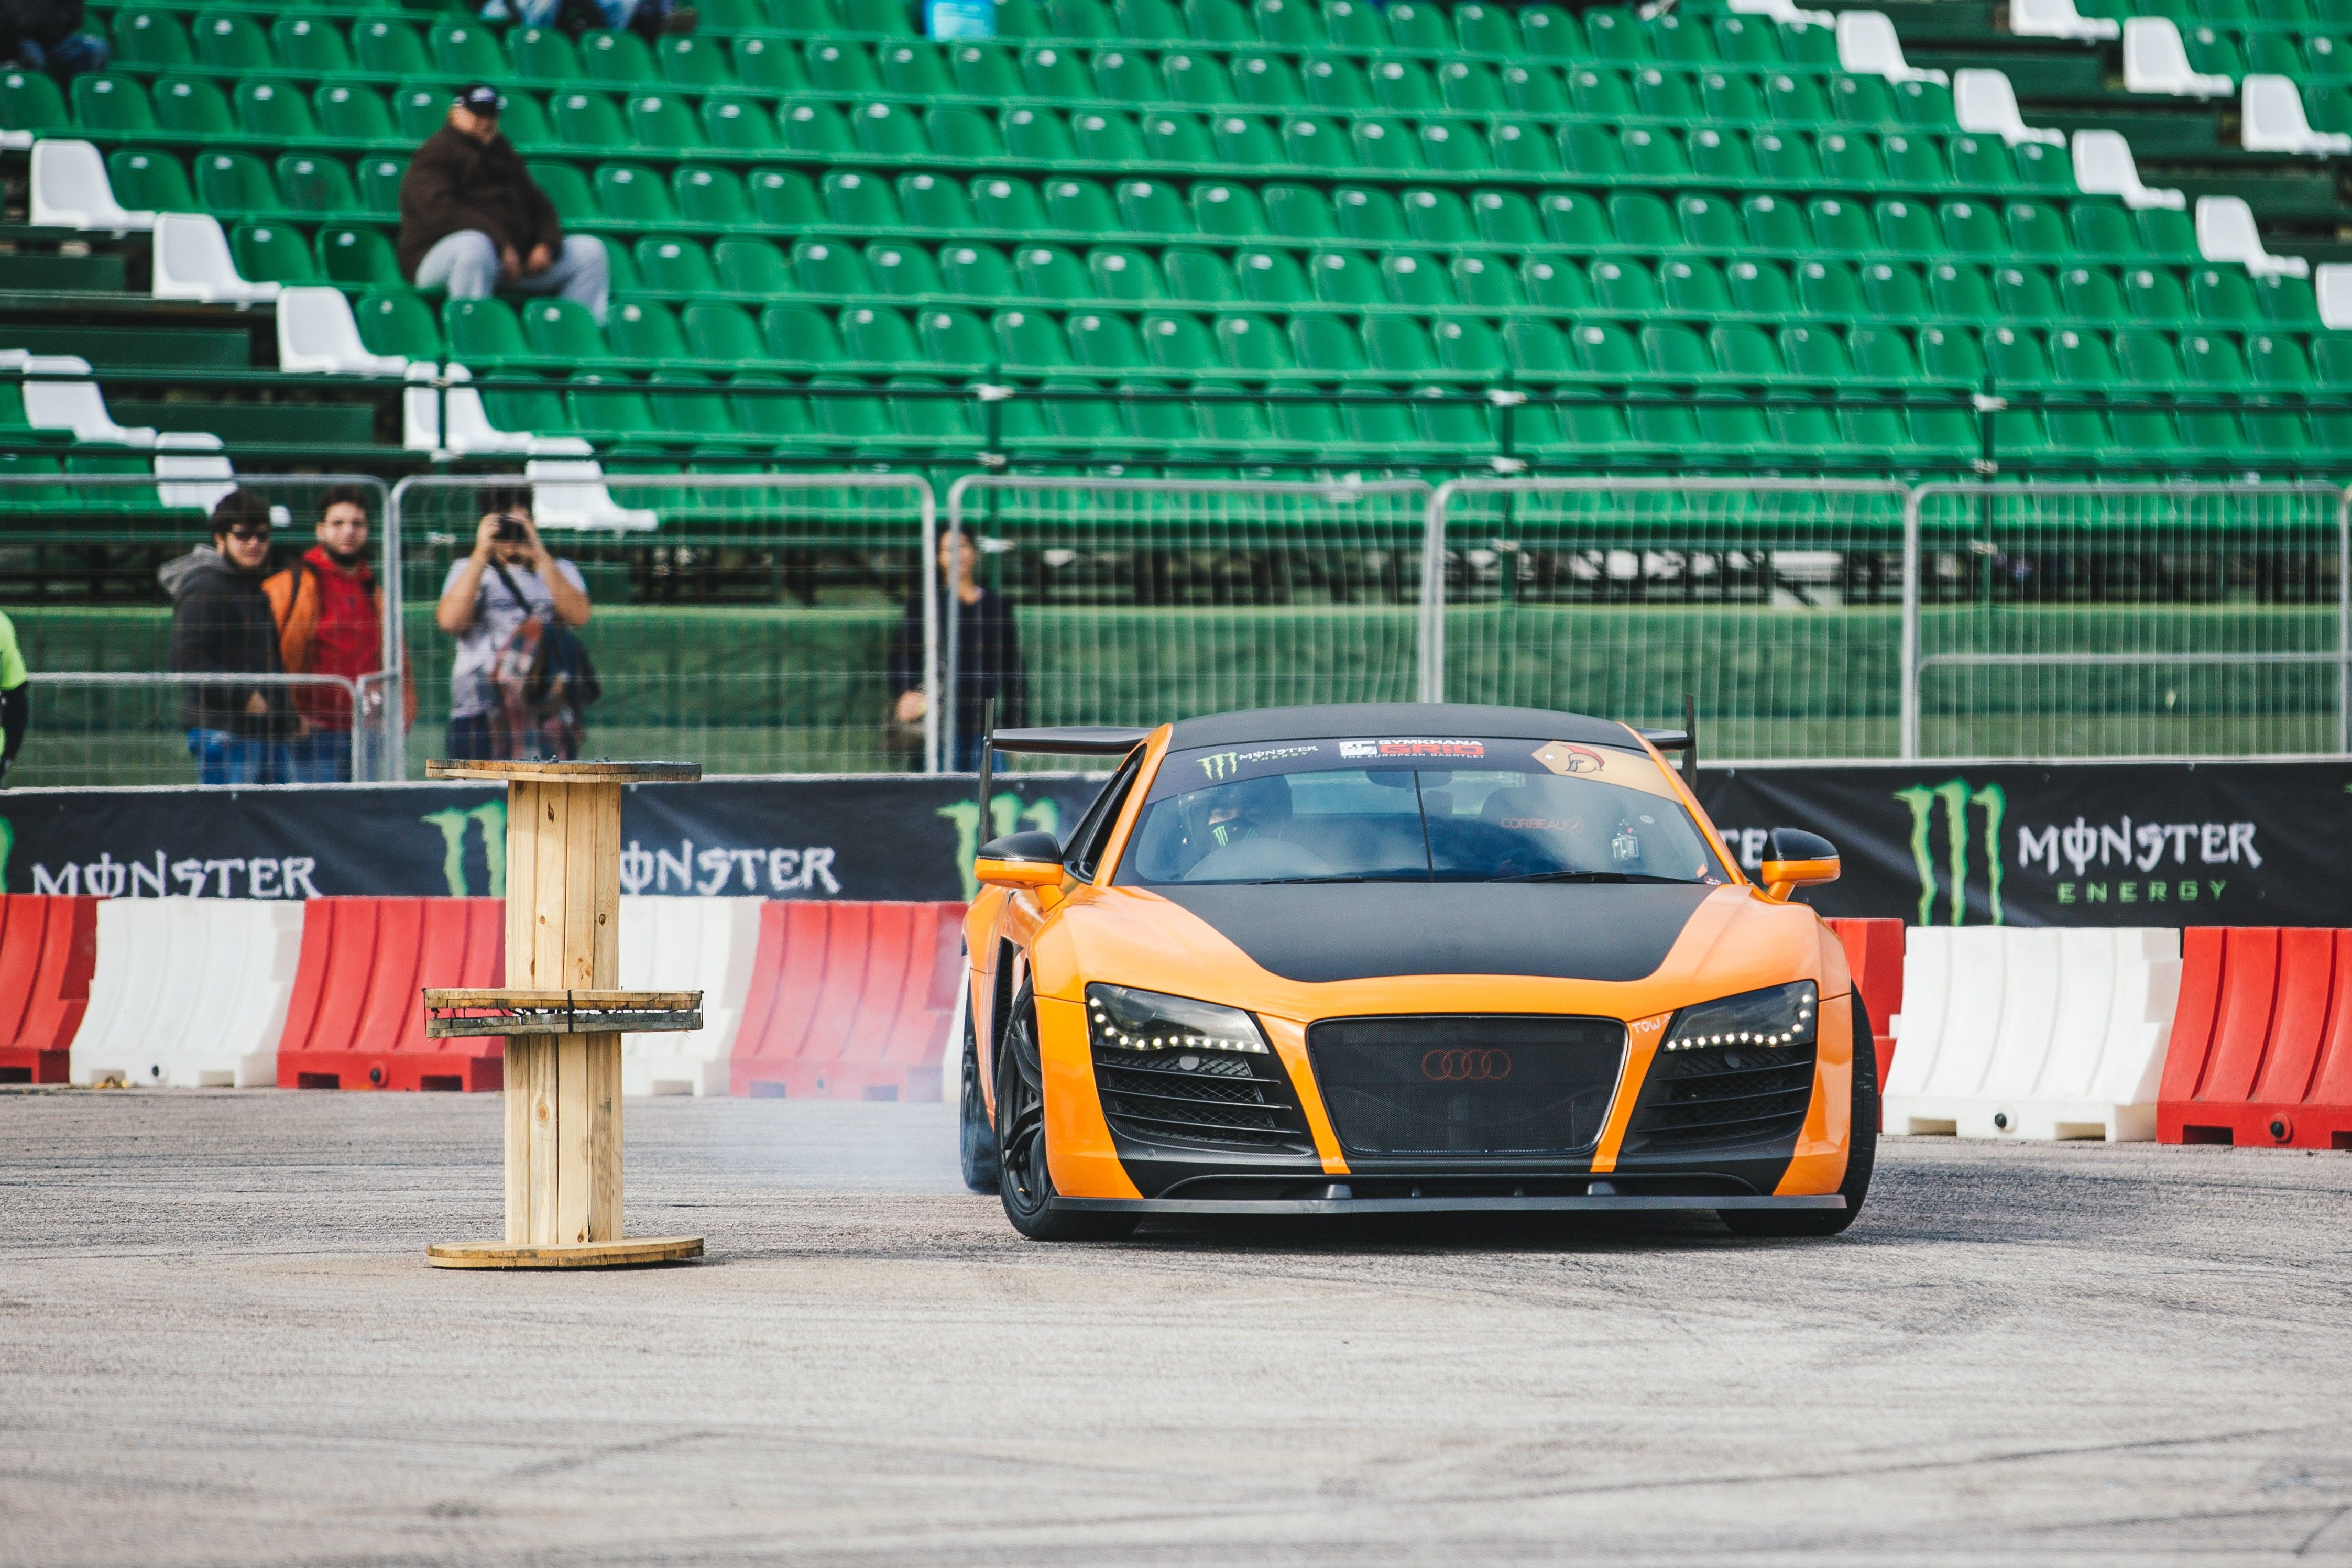 Audi R8 Drifter National Geographic Channel Abu Dhabi Photos Supercar Megabuild National Geographic Channel Abu Dhabi National Geographic Channel Middle East English